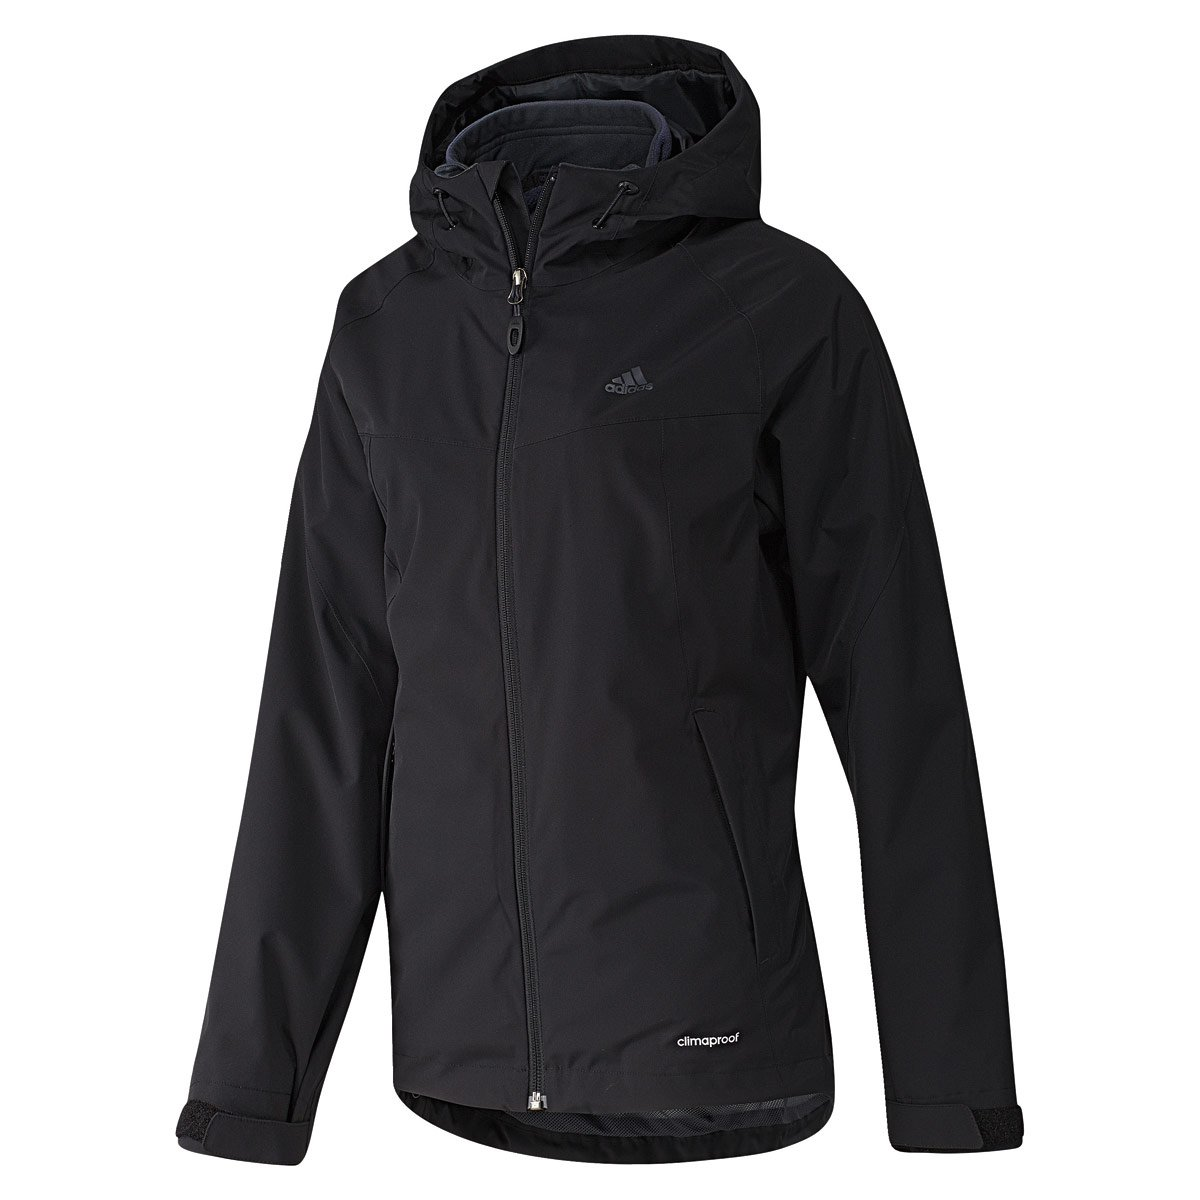 adidas Damen Jacke 3-in-1 Fleece Wandertag